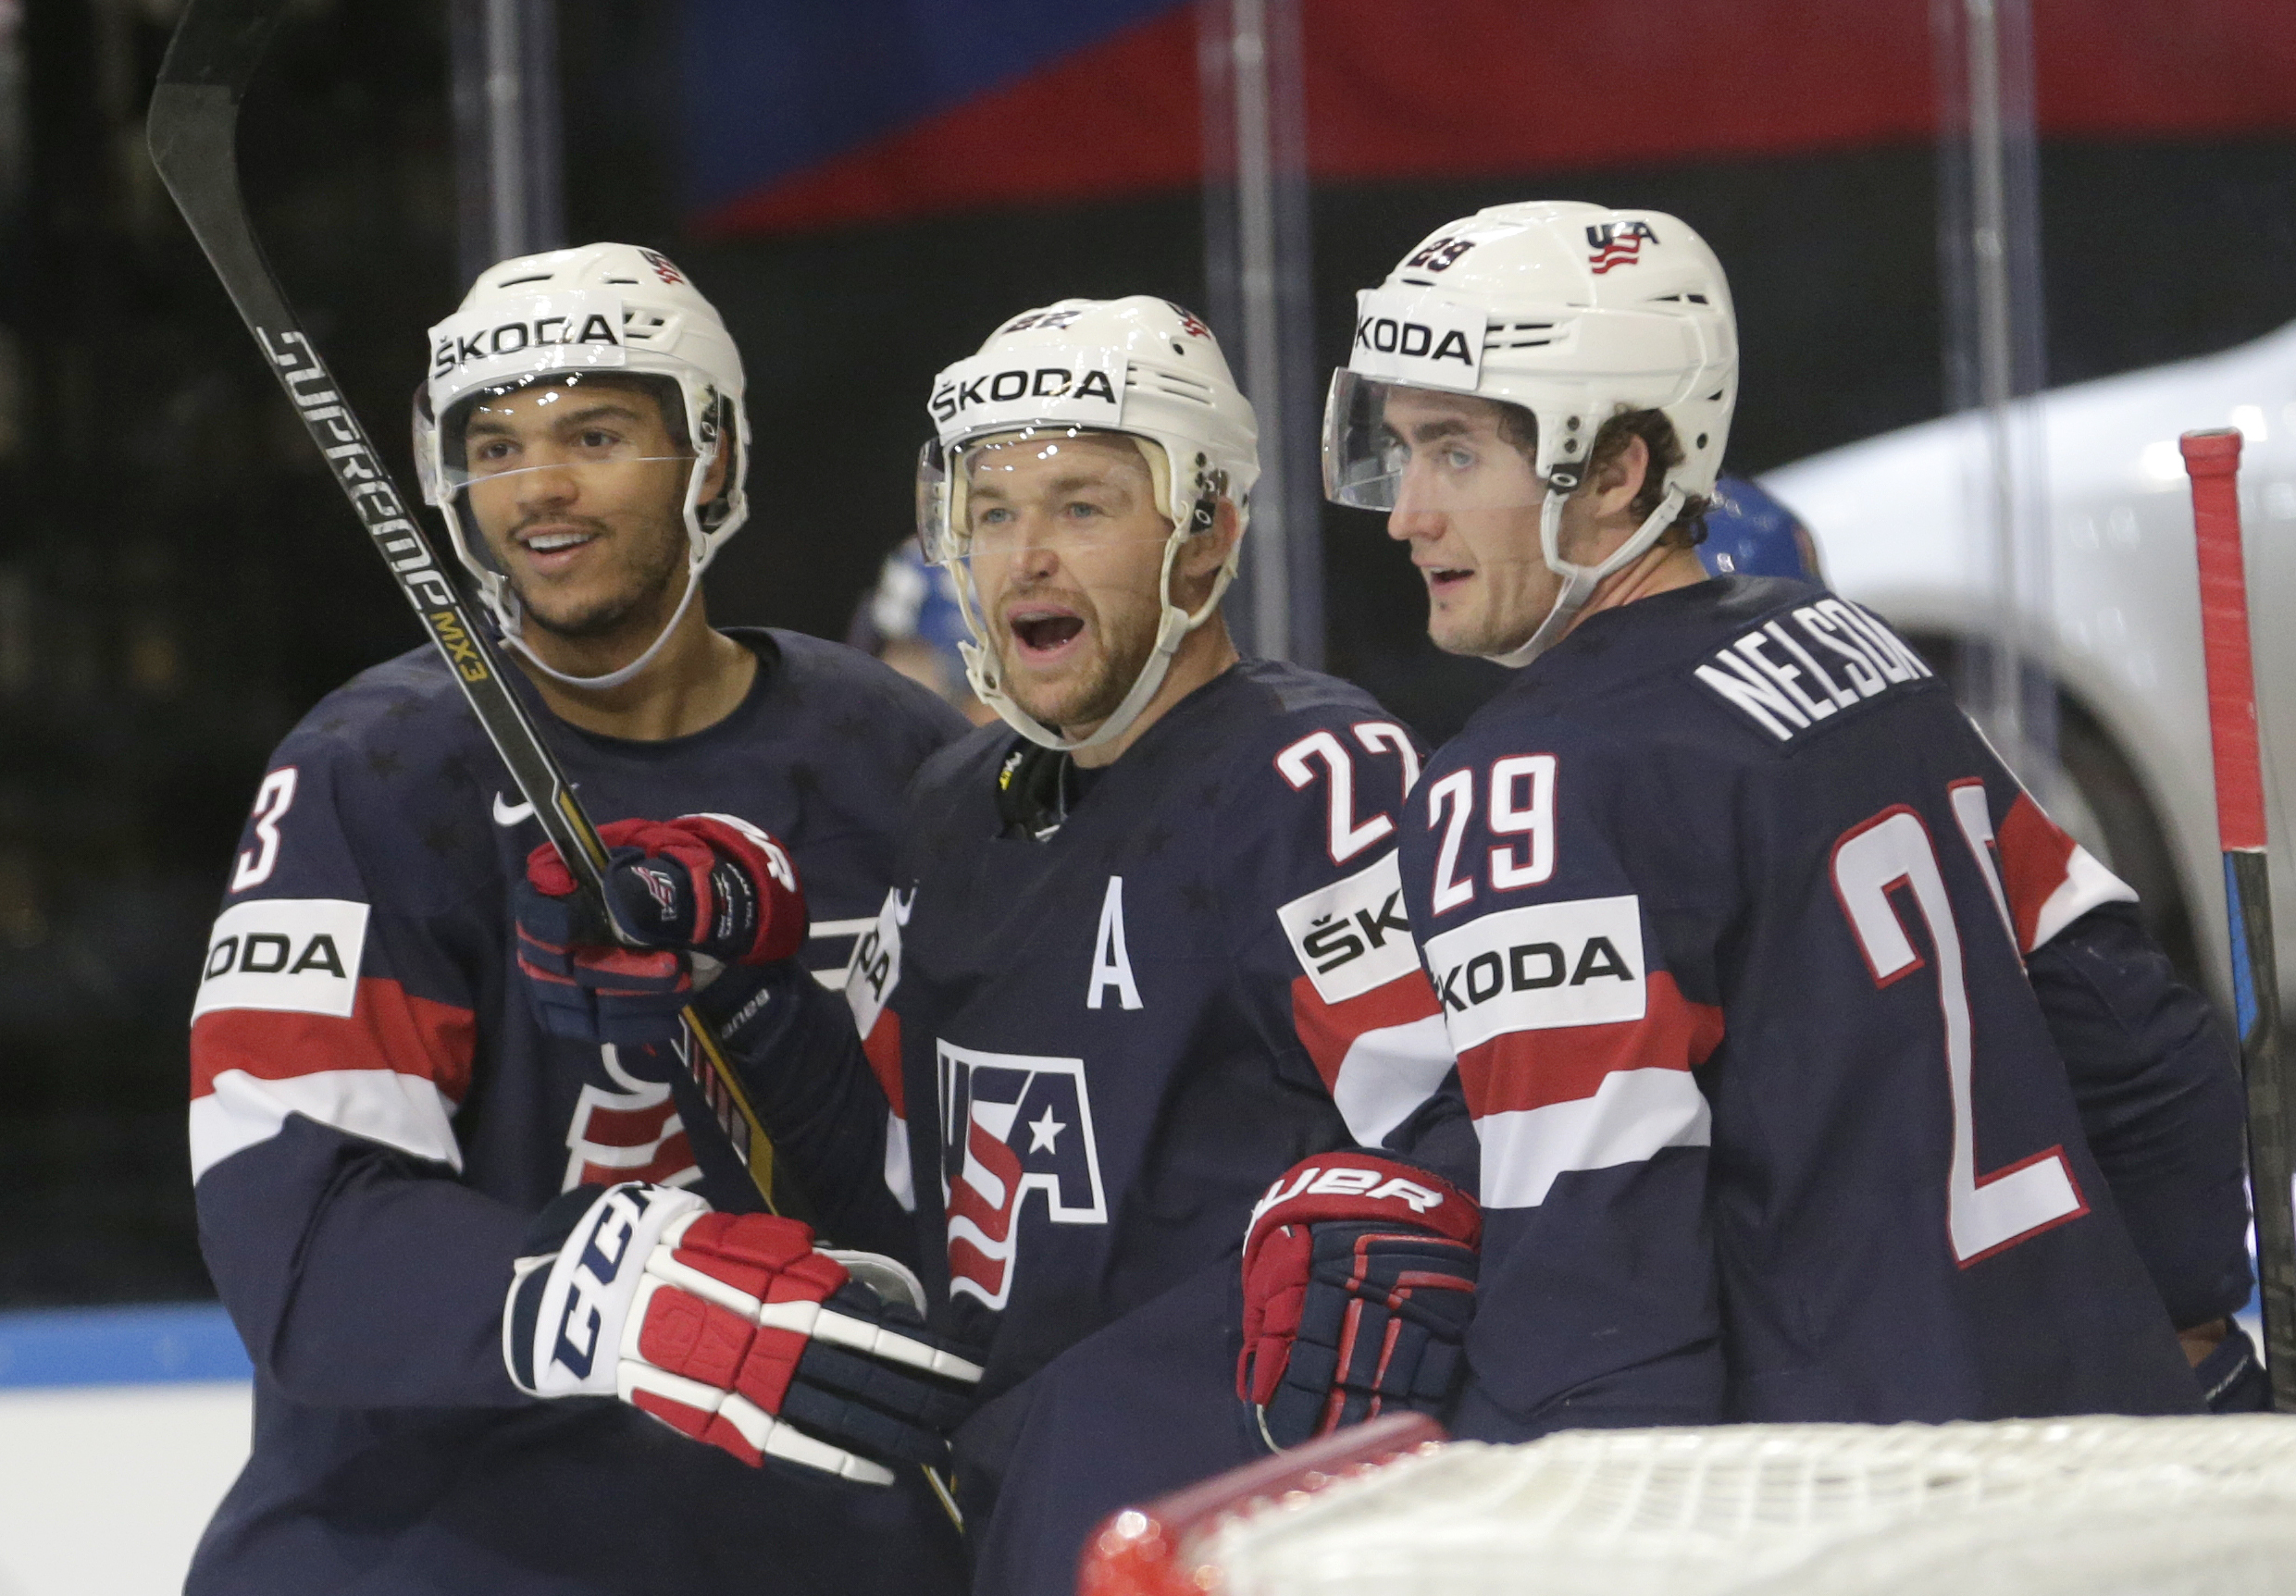 Trevor Lewis, of the United States, center, celebrates with Brock Nelson, right, and Seth Jones, left, after scoring against the Czech Republic during the Hockey World Championships bronze medal match in Prague, Czech Republic, Sunday, May 17, 2015. (AP P